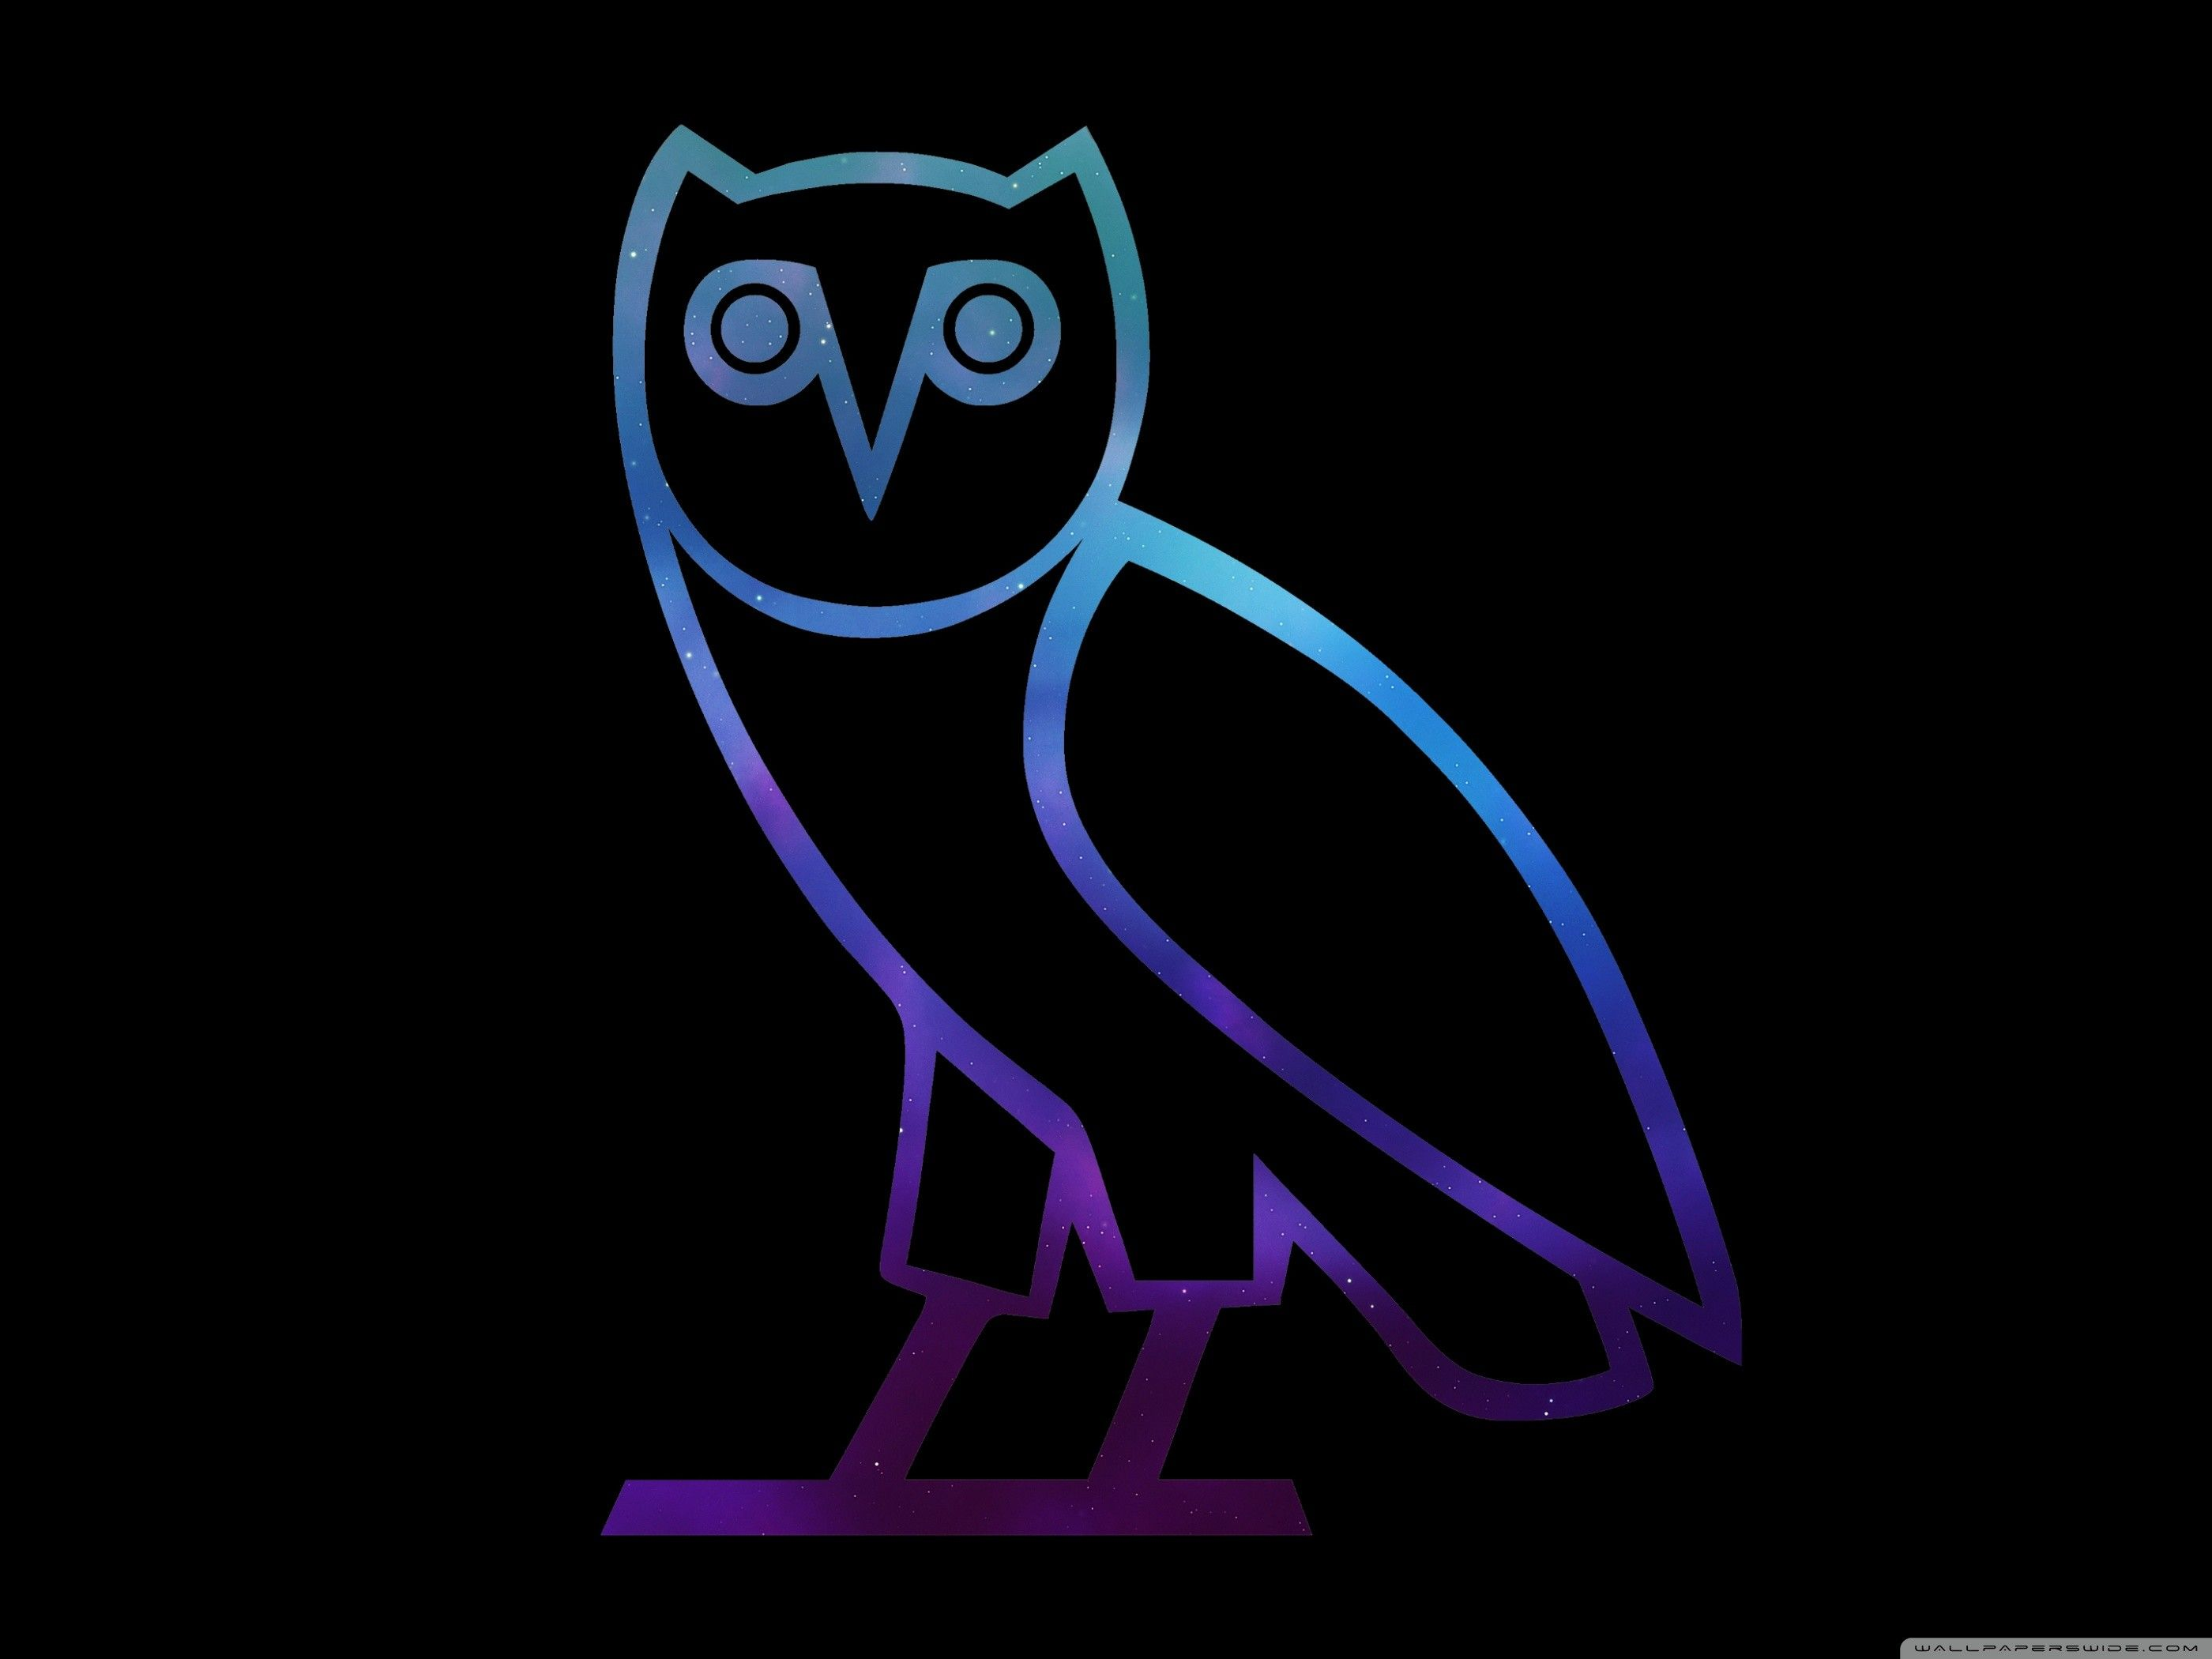 71 Drake Iphone Wallpapers On Wallpaperplay Ovo Wallpaper Owl Wallpaper Drake Iphone Wallpaper